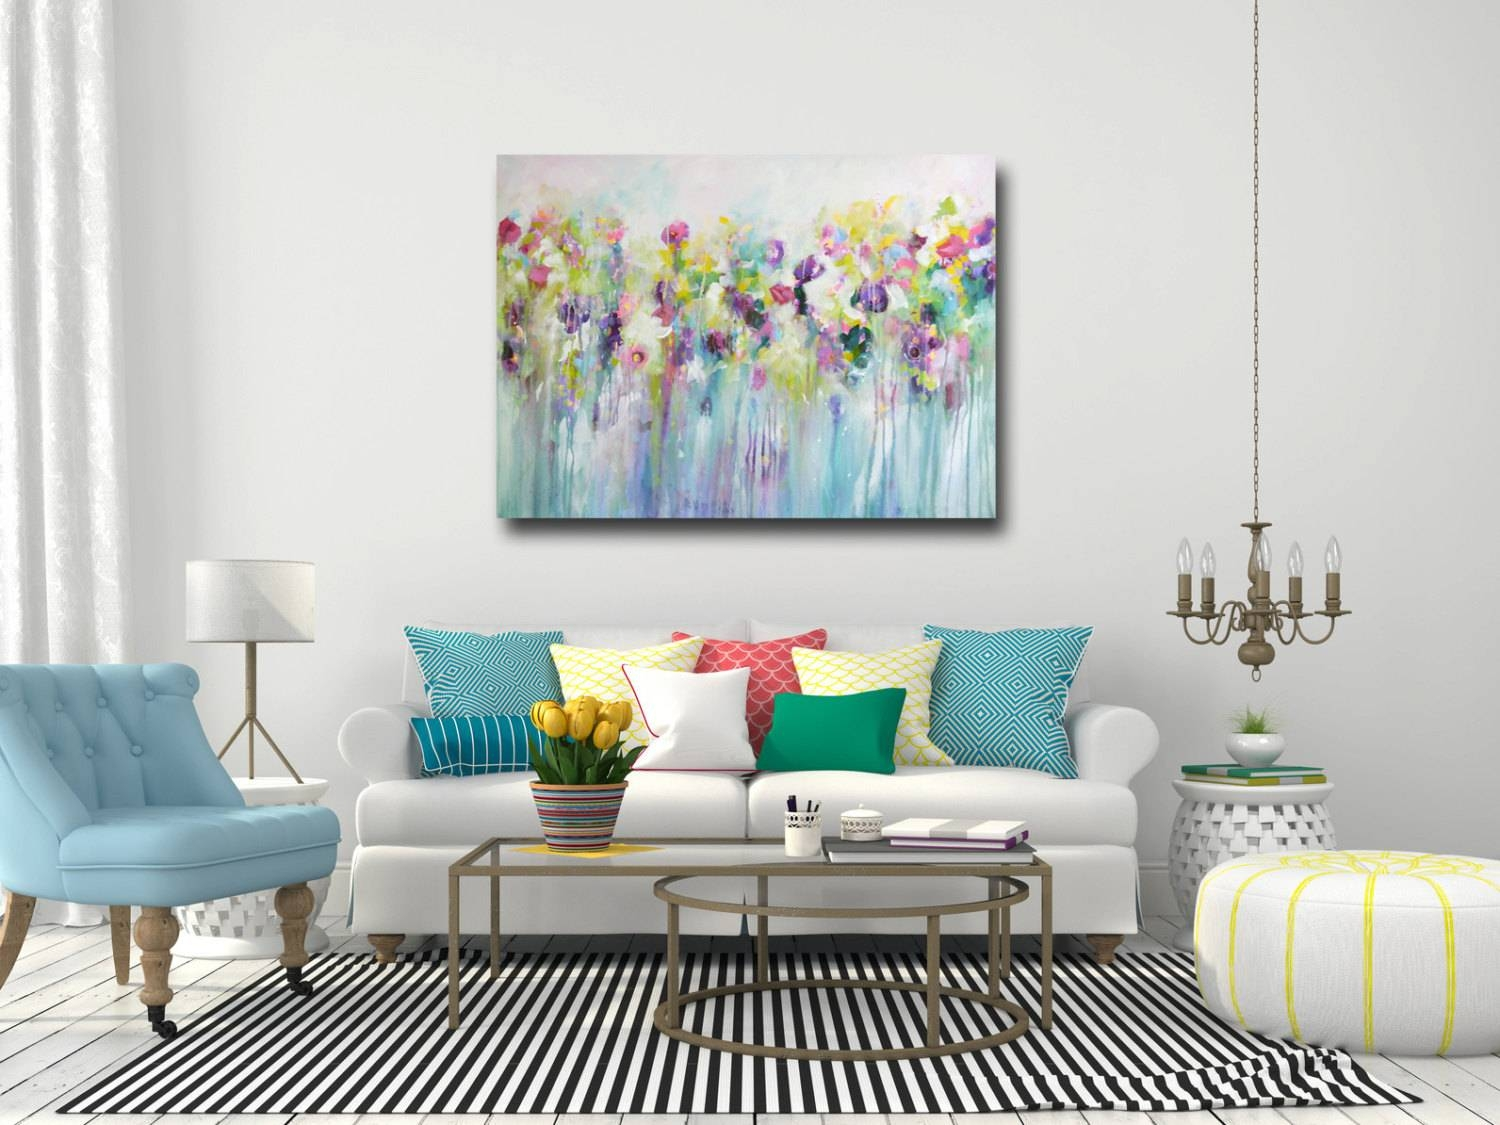 Large Wall Art Canvas Art Abstract Floral Canvas Print Throughout Most Up To Date Large Yellow Wall Art (View 11 of 20)